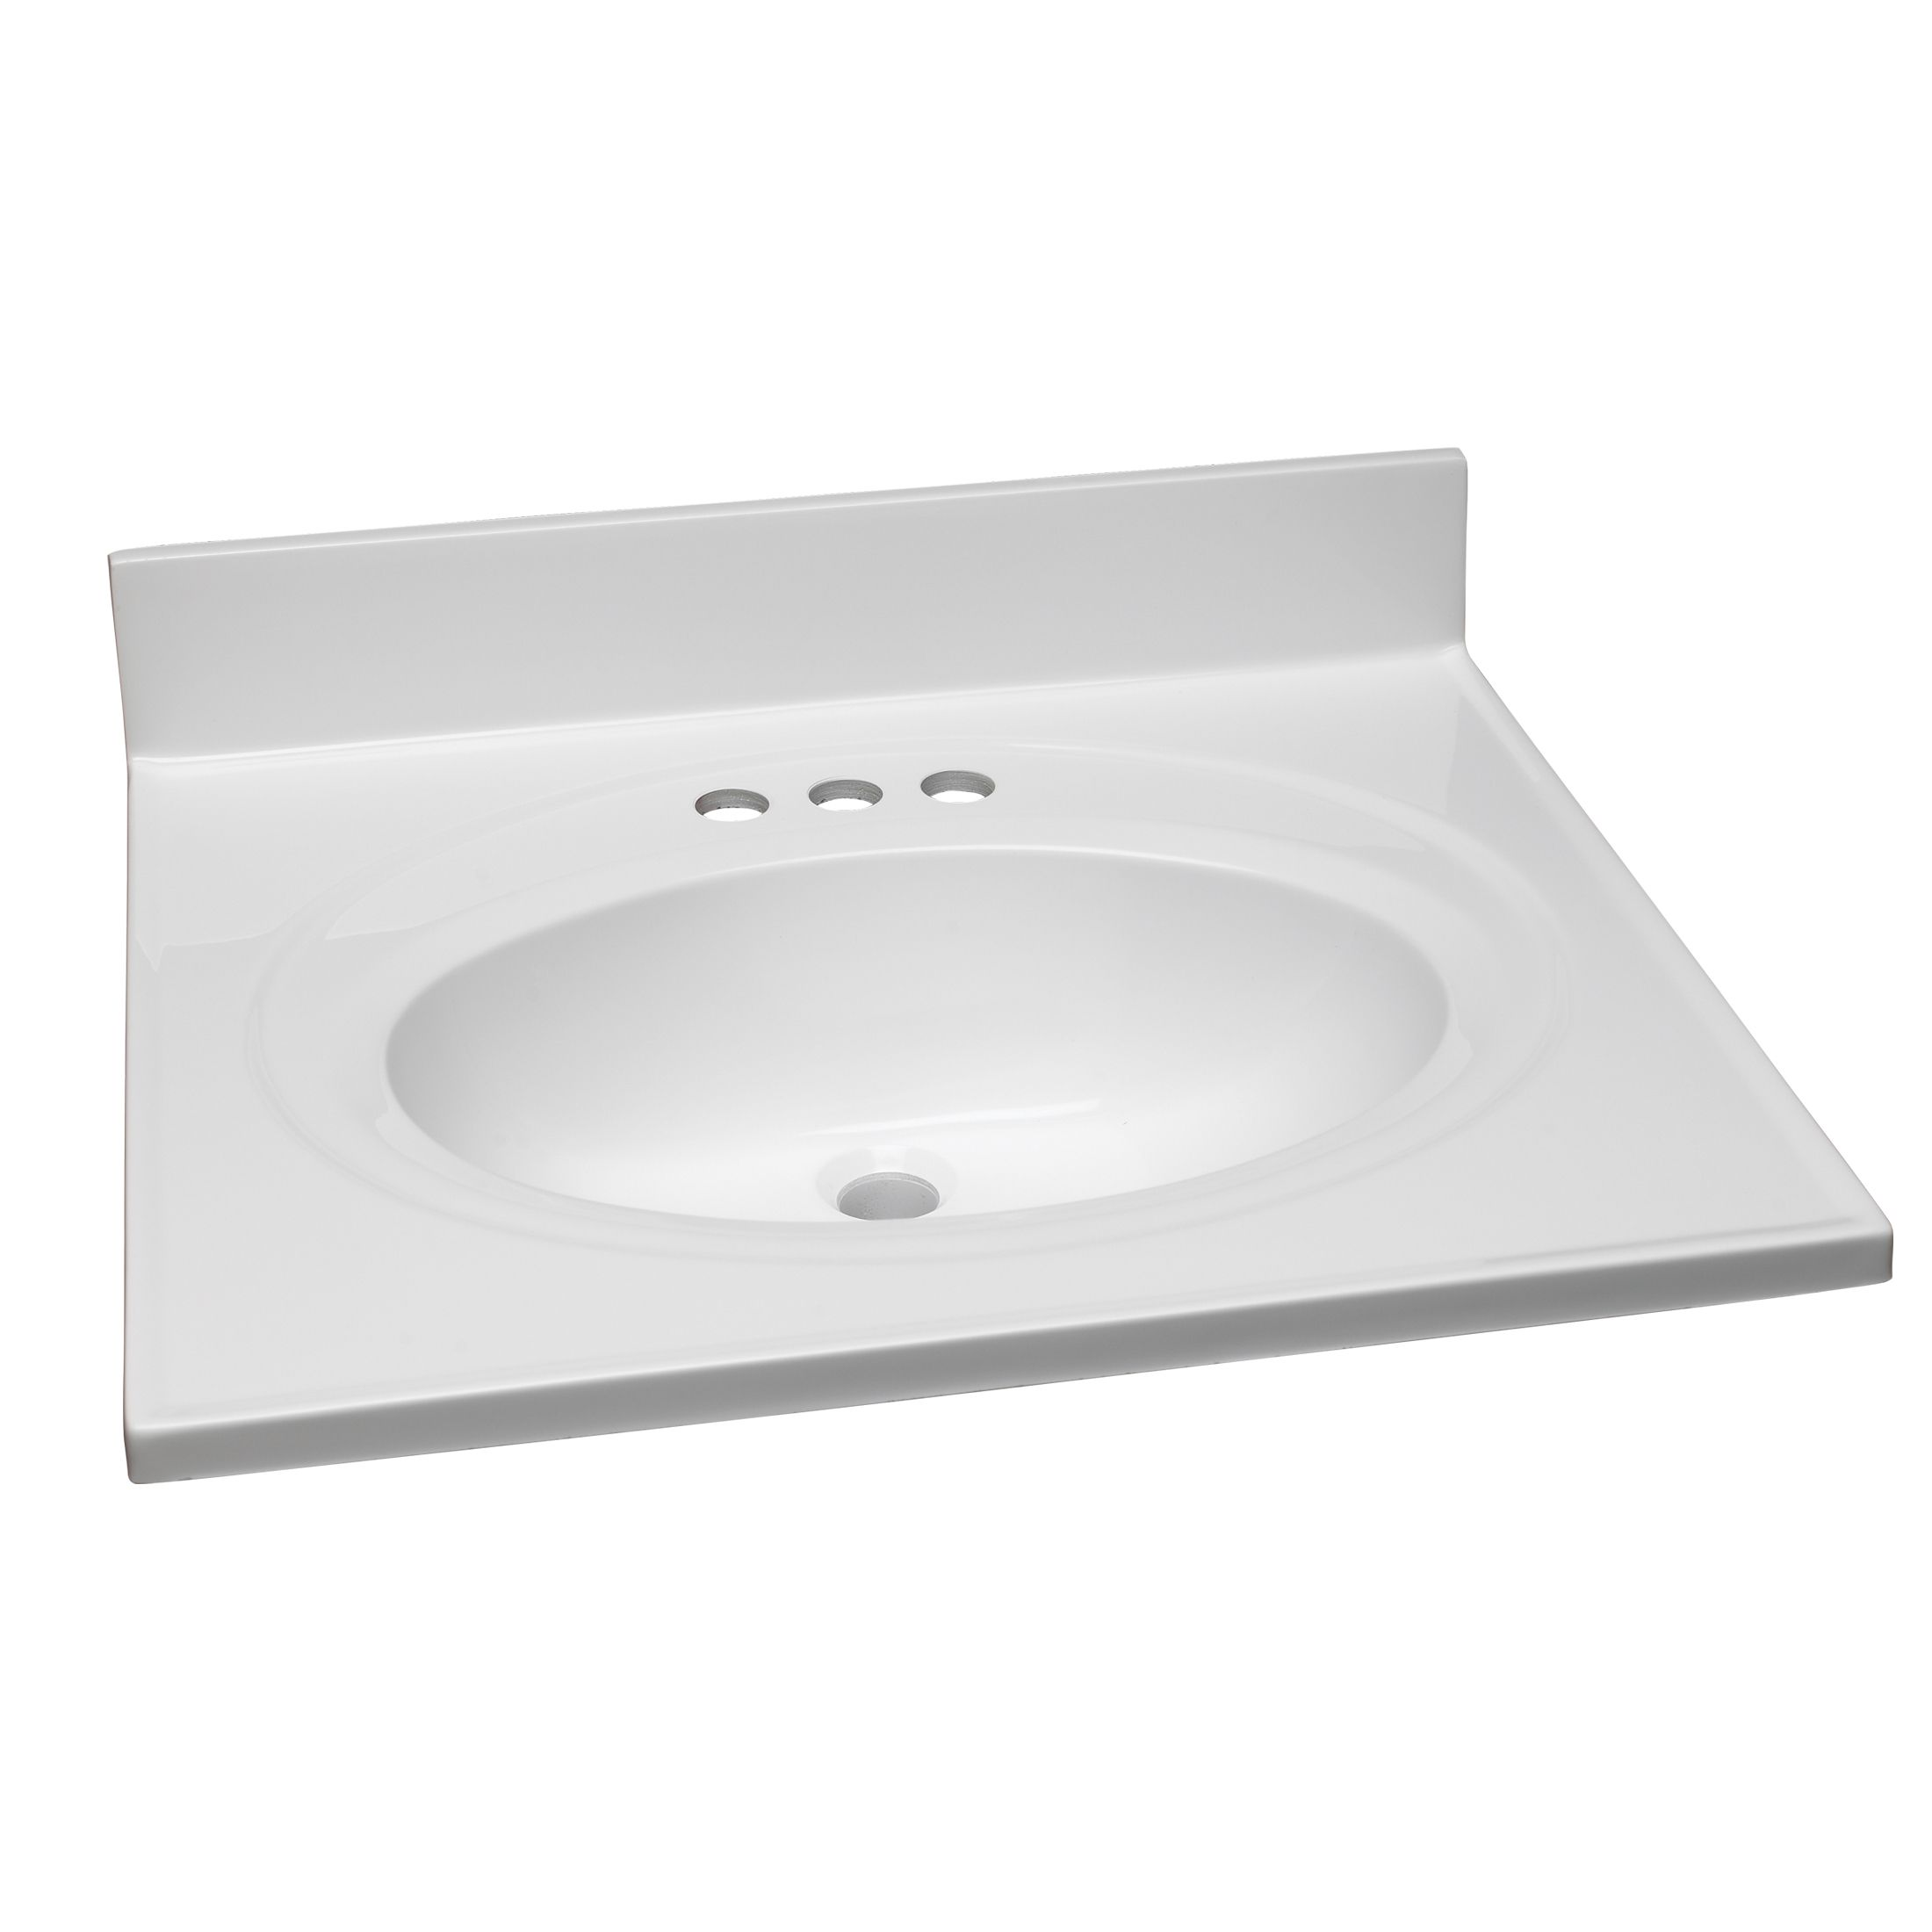 25-Inch by 22-Inch Marble Vanity Top/Single Bowl, Solid White #551366